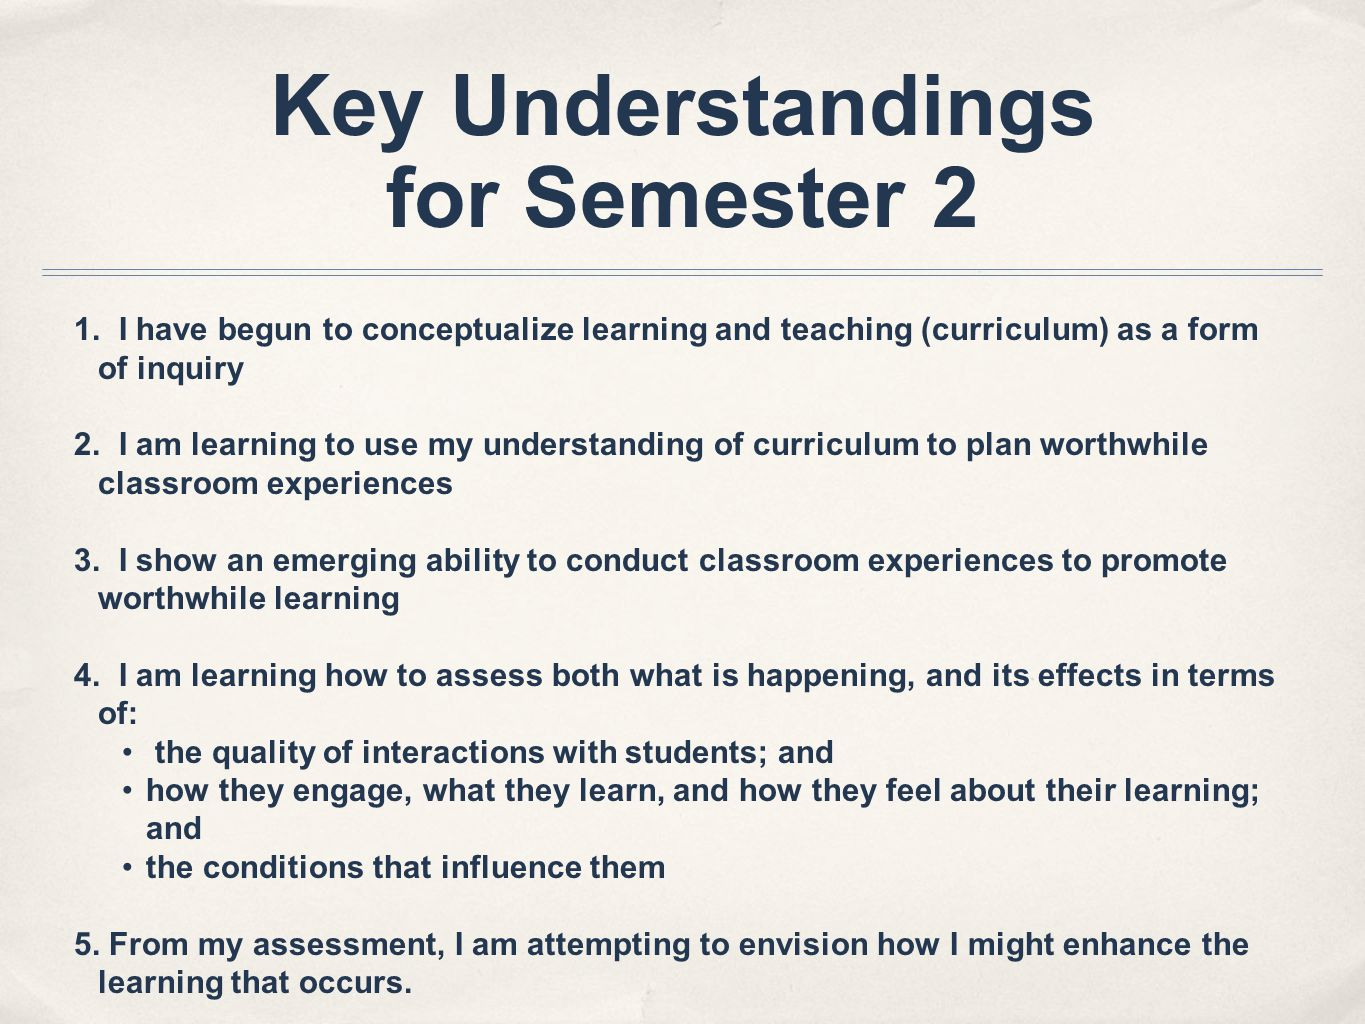 Key Understandings for Semester 2 1. I have begun to conceptualize learning and teaching (curriculum) as a form of inquiry 2. I am learning to use my